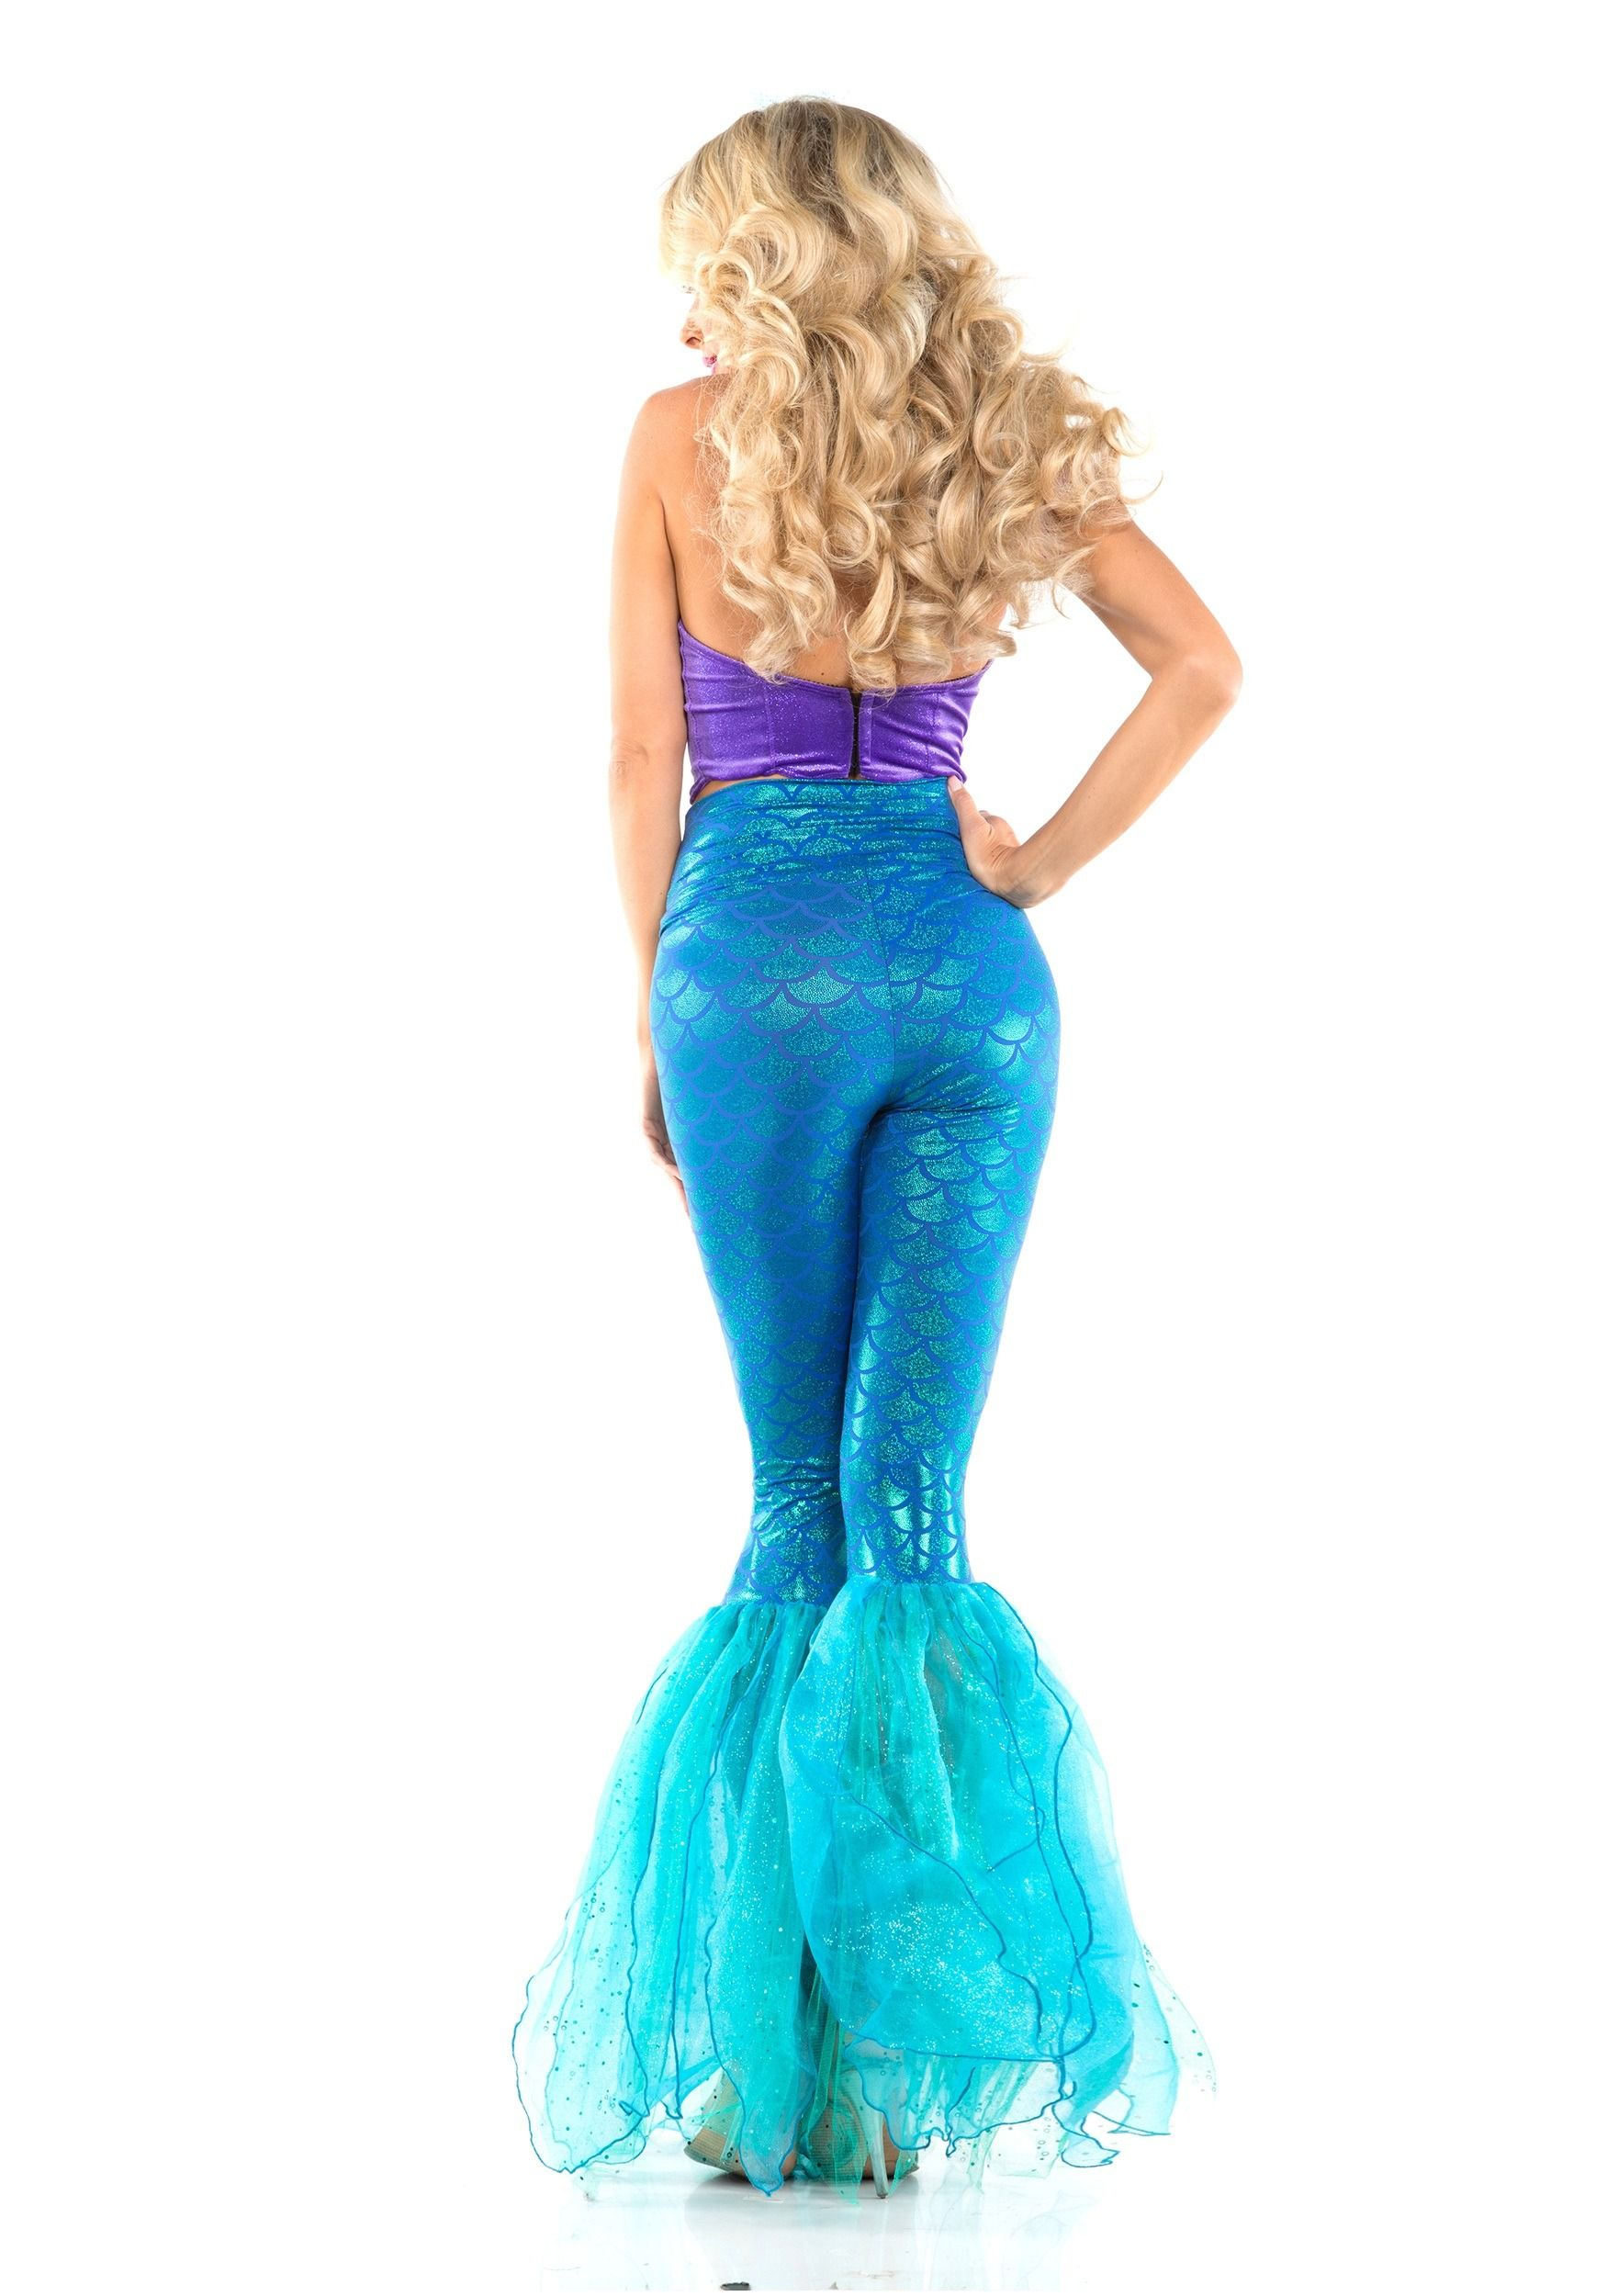 f9dab6f35a75e3 Mermaid Costumes - Adult, Child Little Mermaid Costumes | Mermaid ...